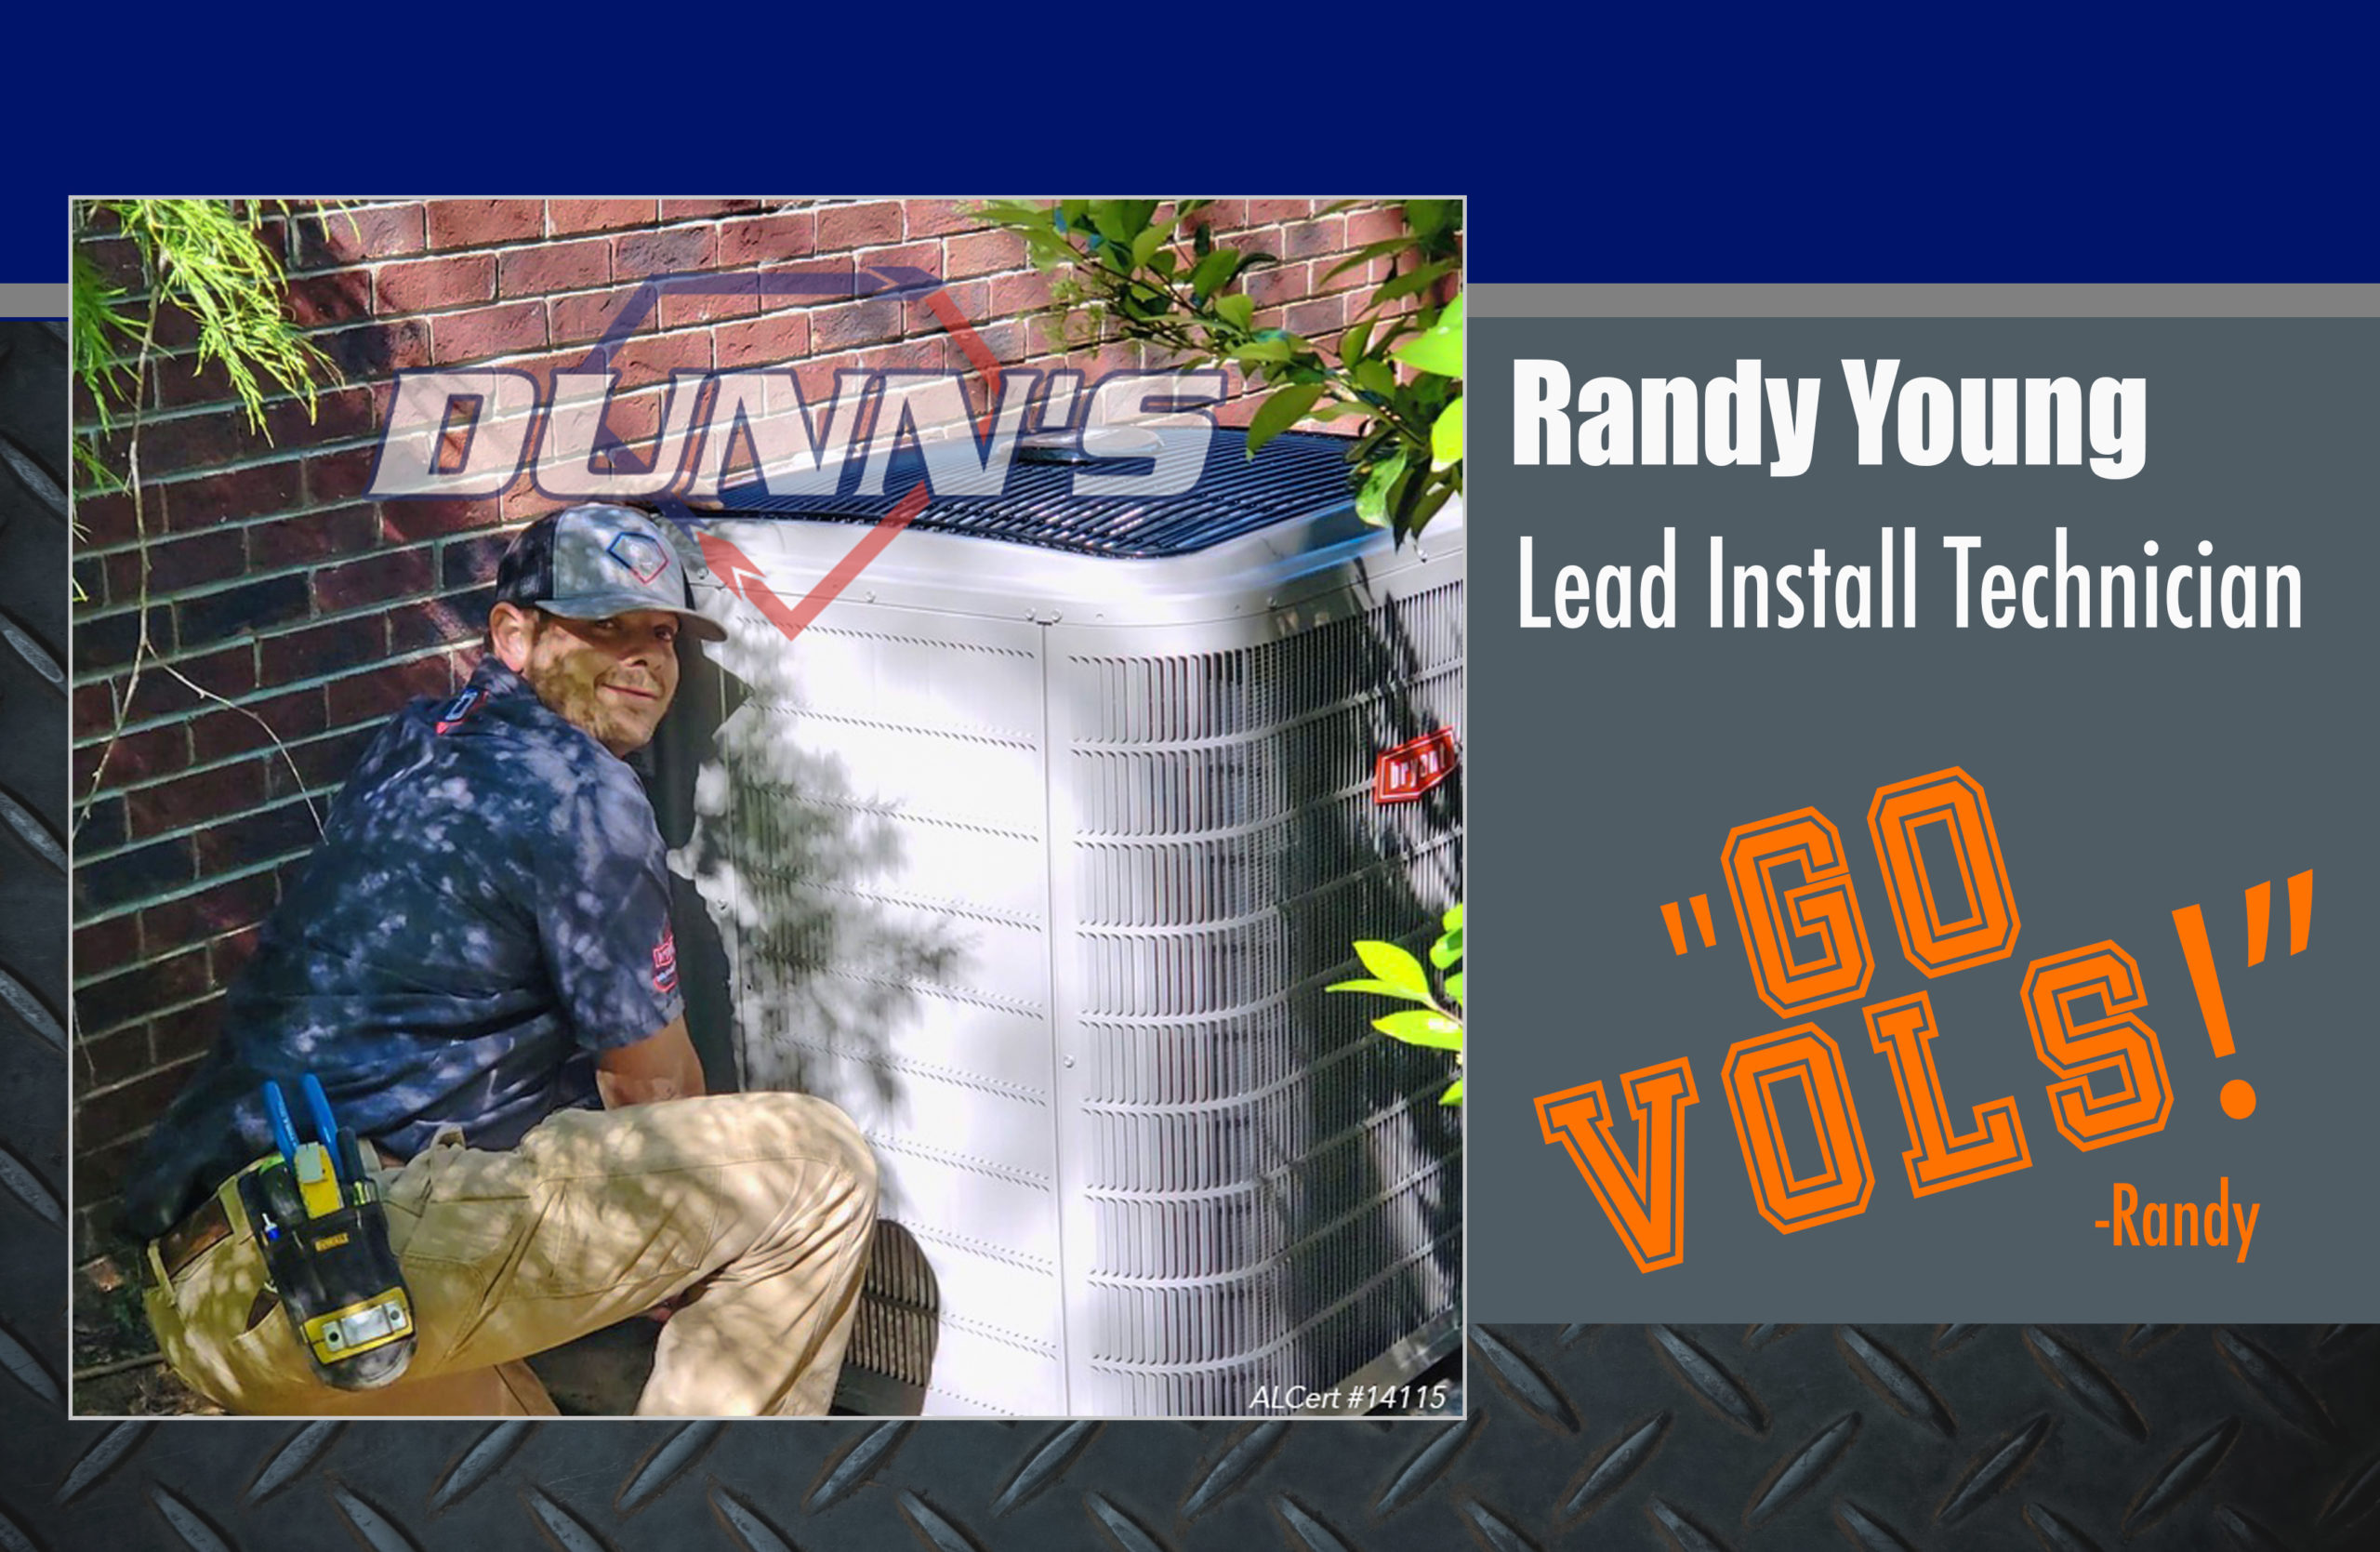 Employee Spotlight – Randy Young